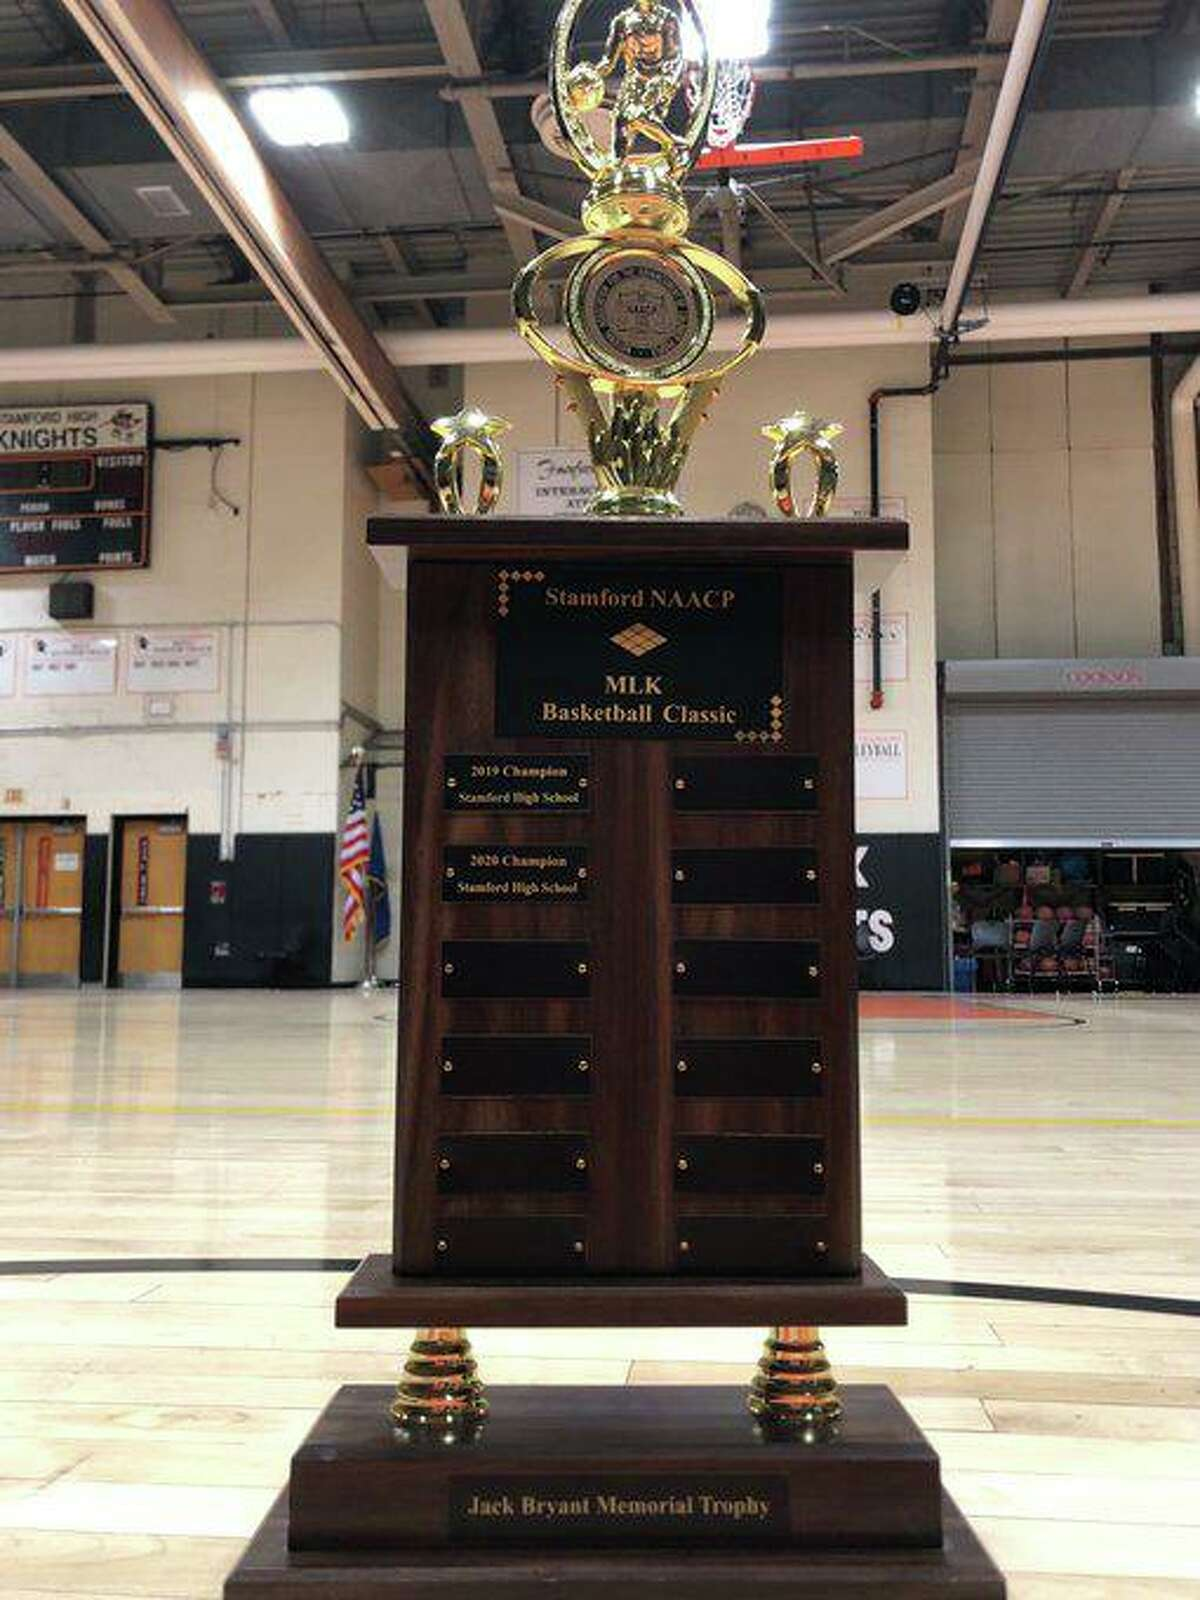 The trophies for the Stamford NAACP/MLK Basketball Classic played between Westhill and Stamford boys and girls basketball every season. The trophy has been named the Jack Bryant Memorial Trophy after the late Stamford NAACP President and city Board of Education member.